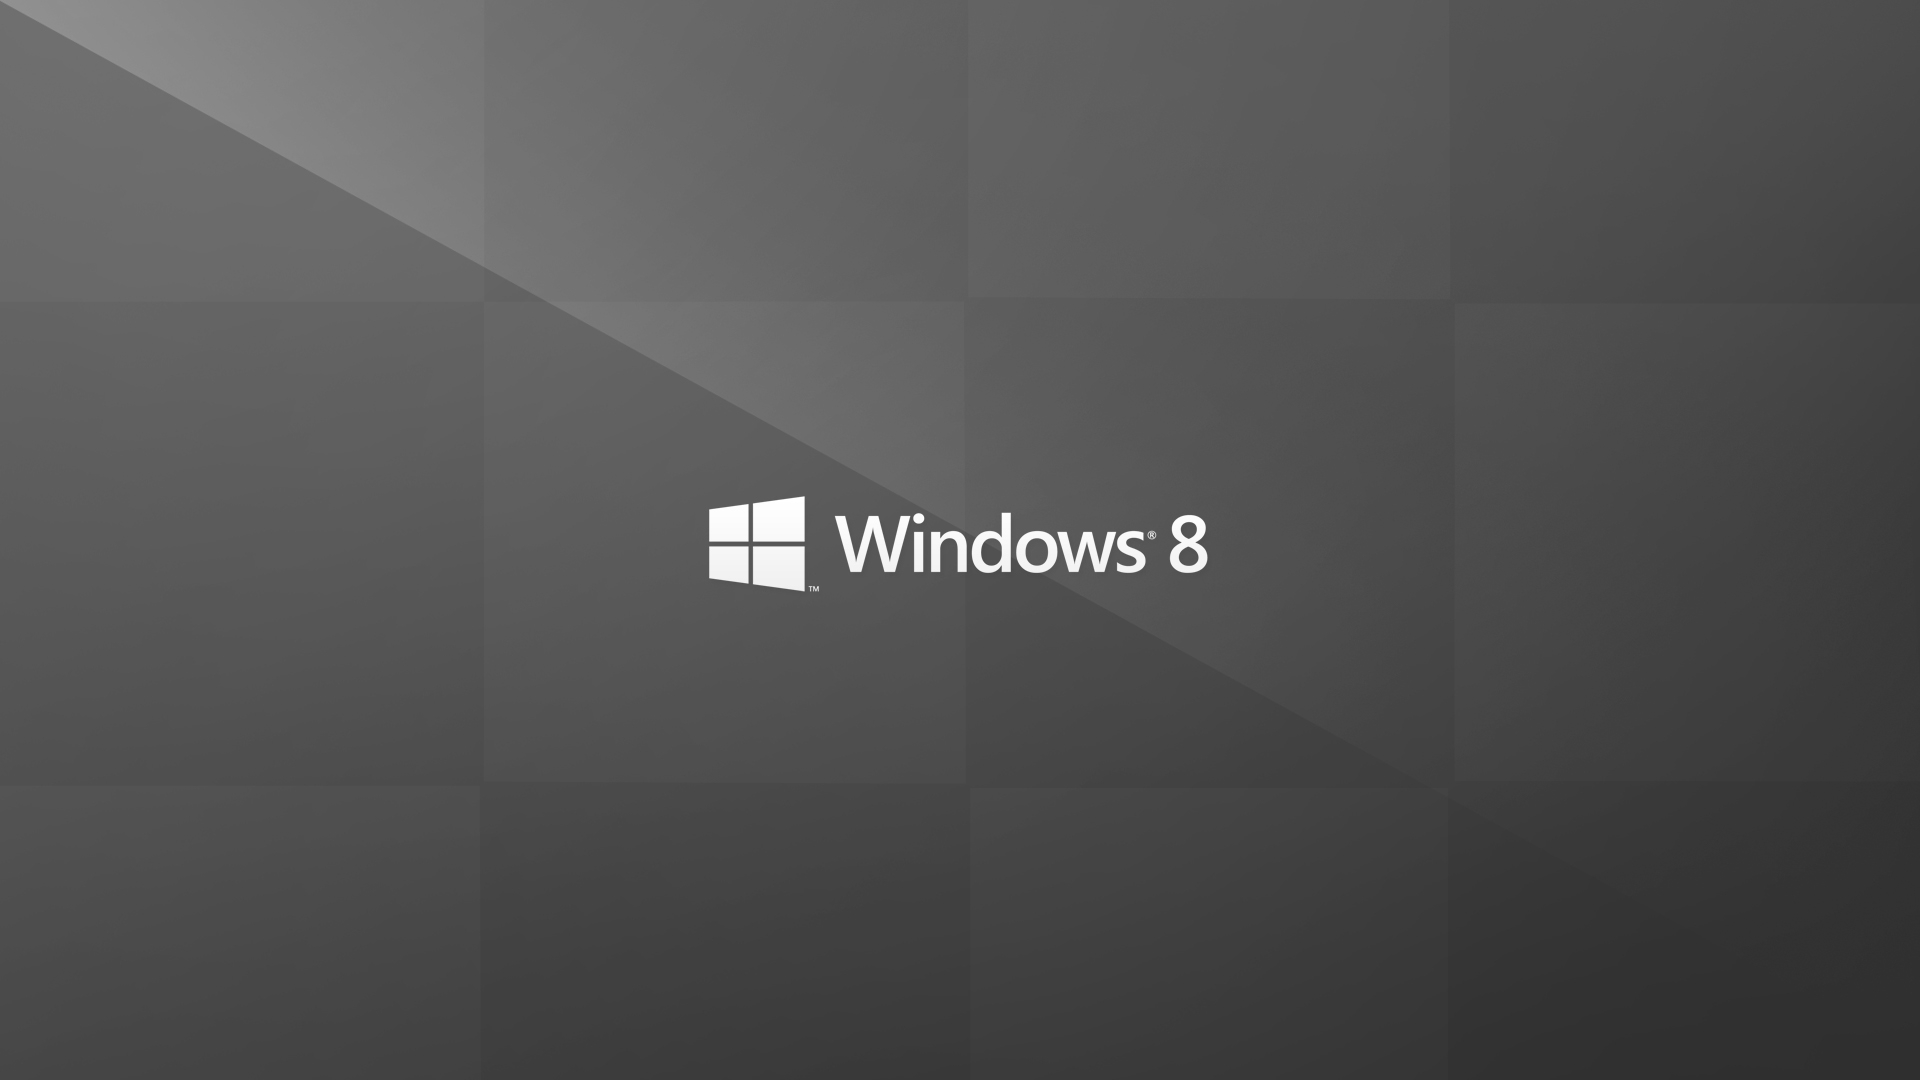 windows 8 wallpapers | best wallpapers